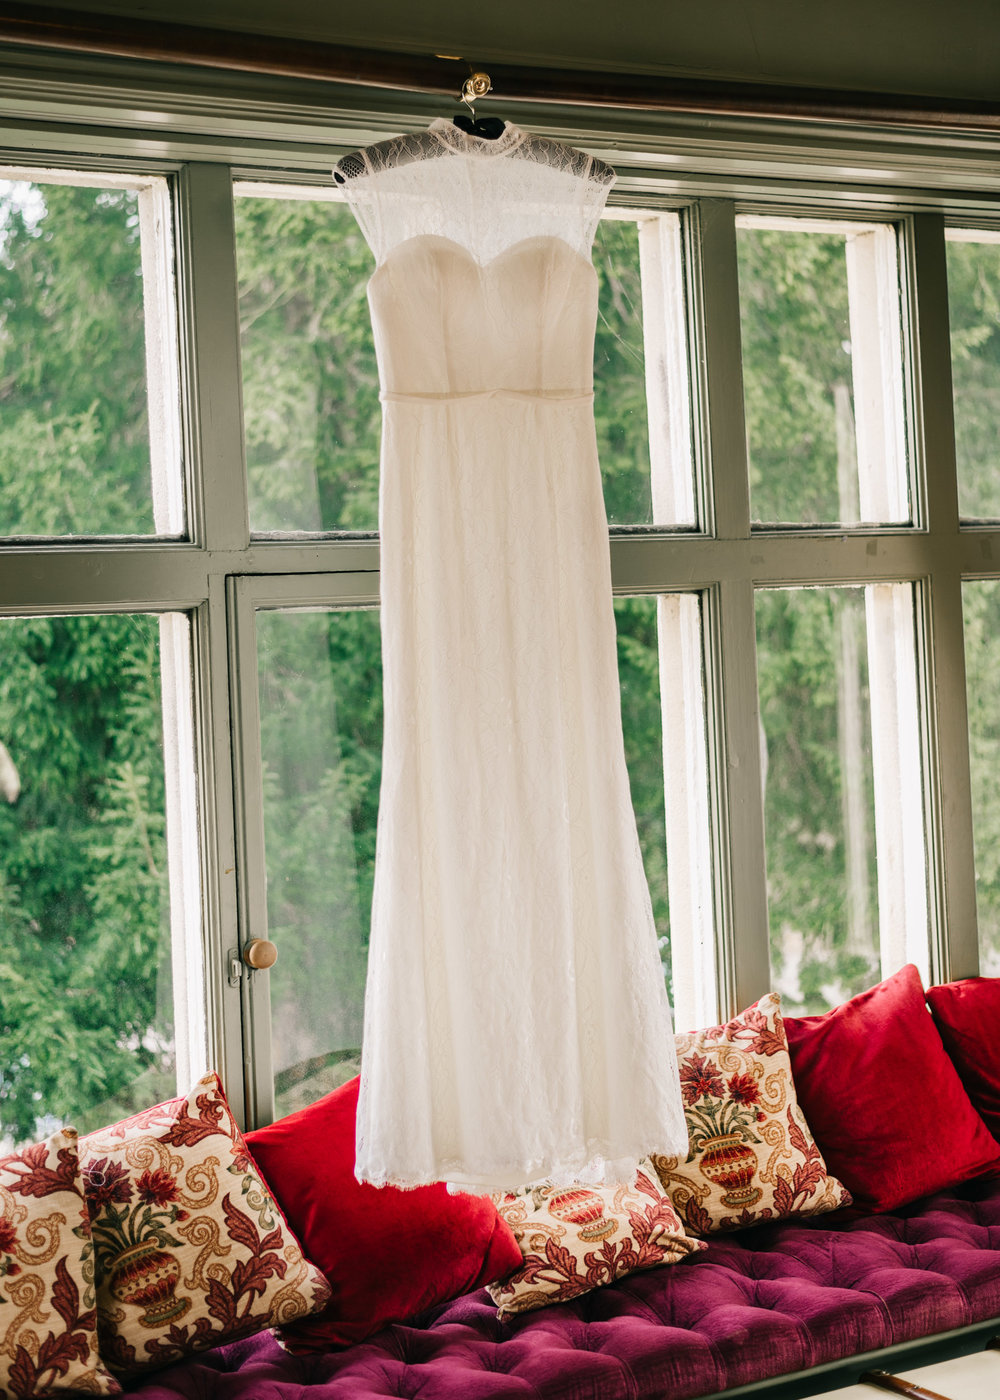 Mitton Hall, Wedding Venue Lancashire, Styled Wedding Photographers Workshop6